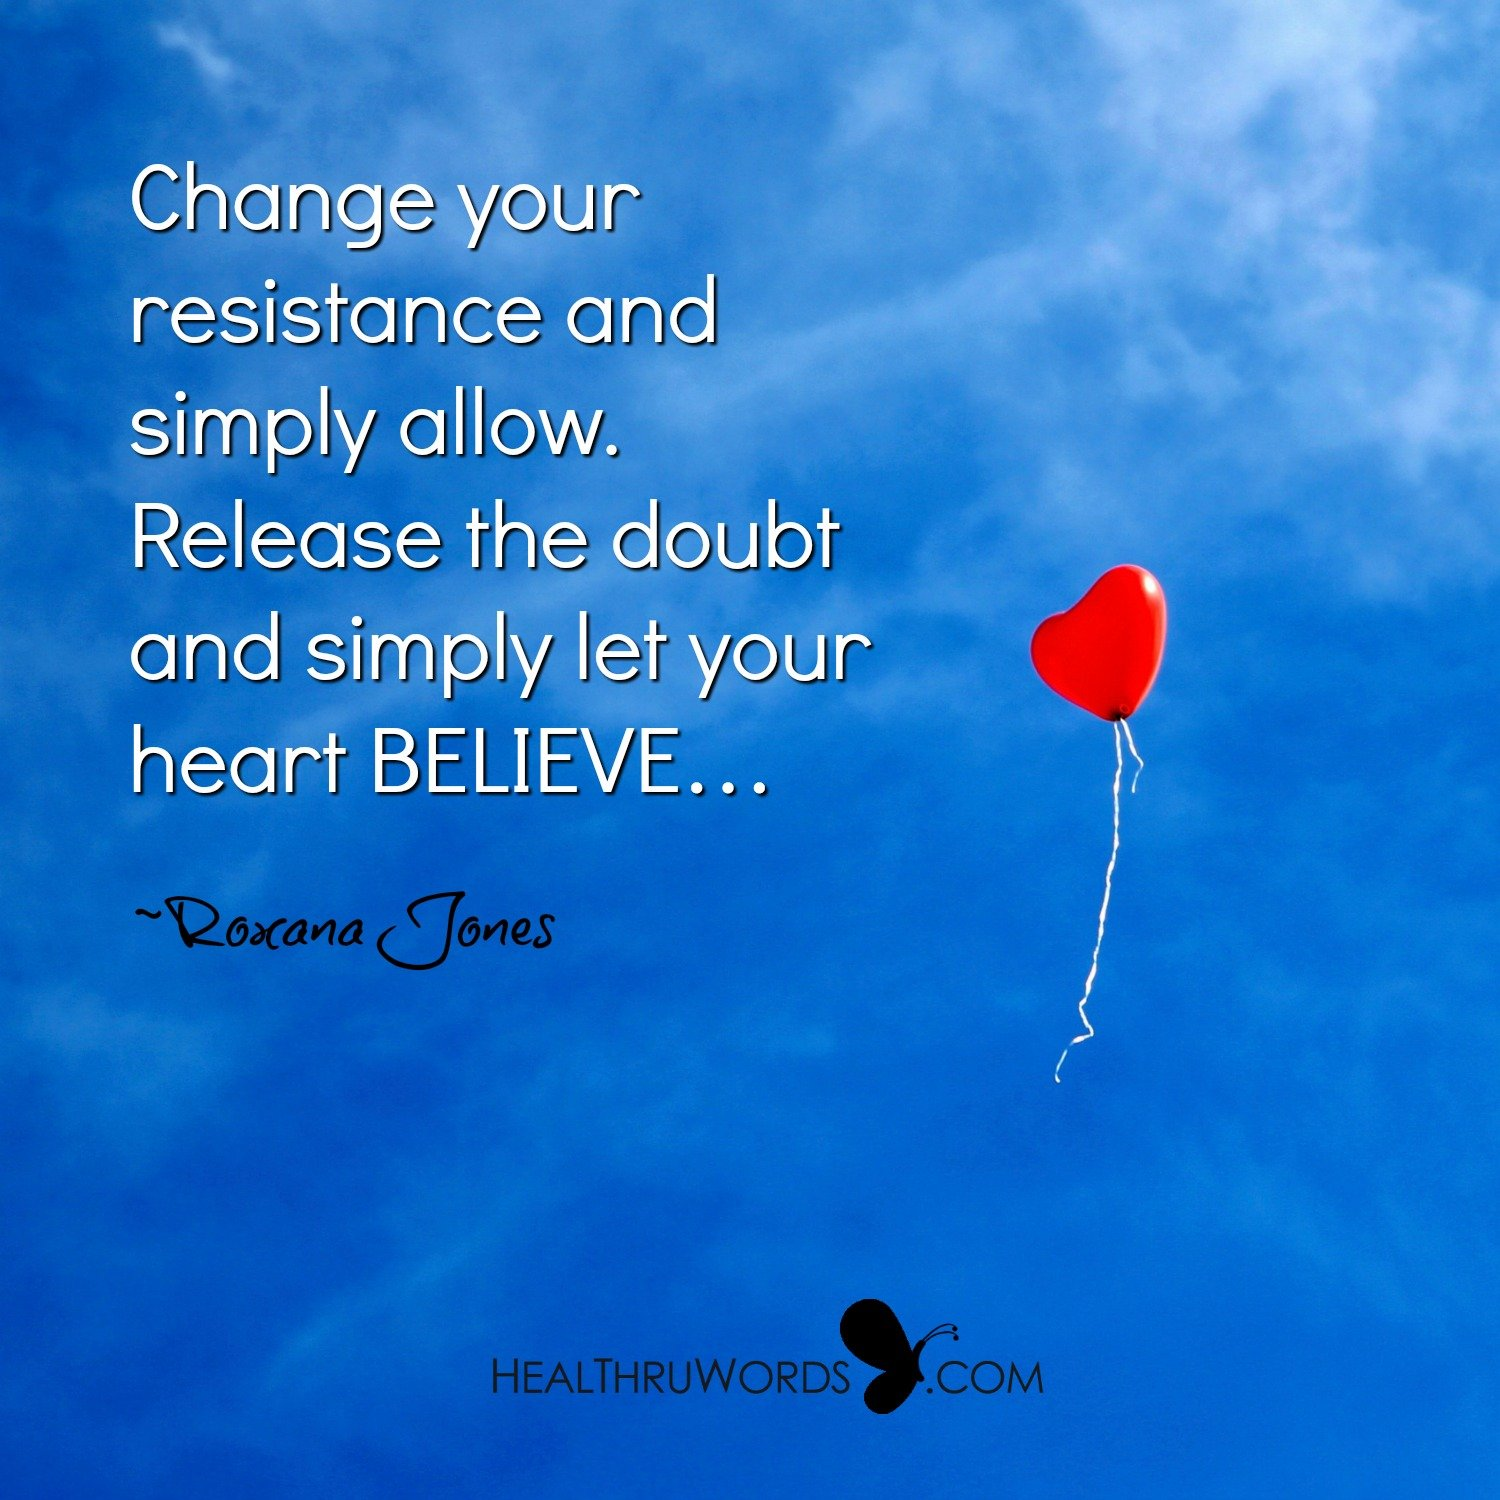 Inspirational Image: Releasing Resistance